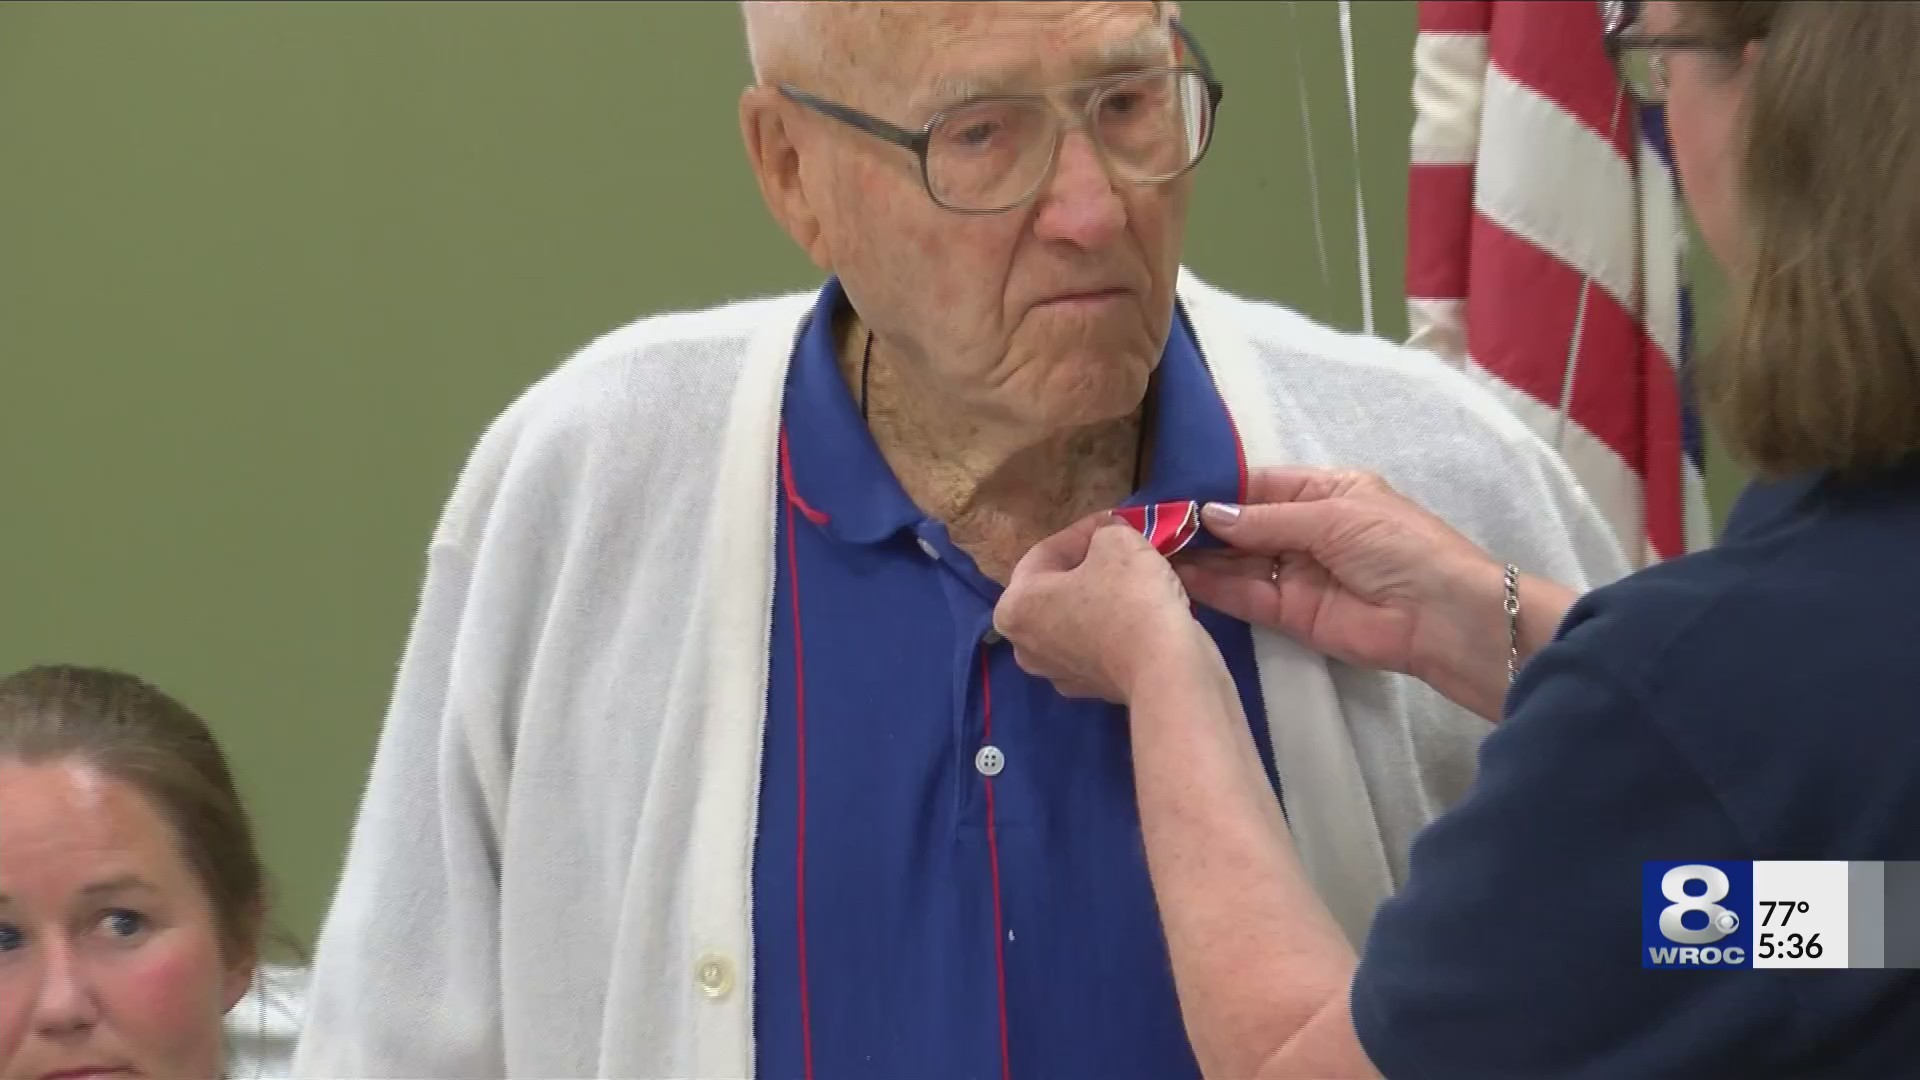 103-year-old Veteran received bronze star and more